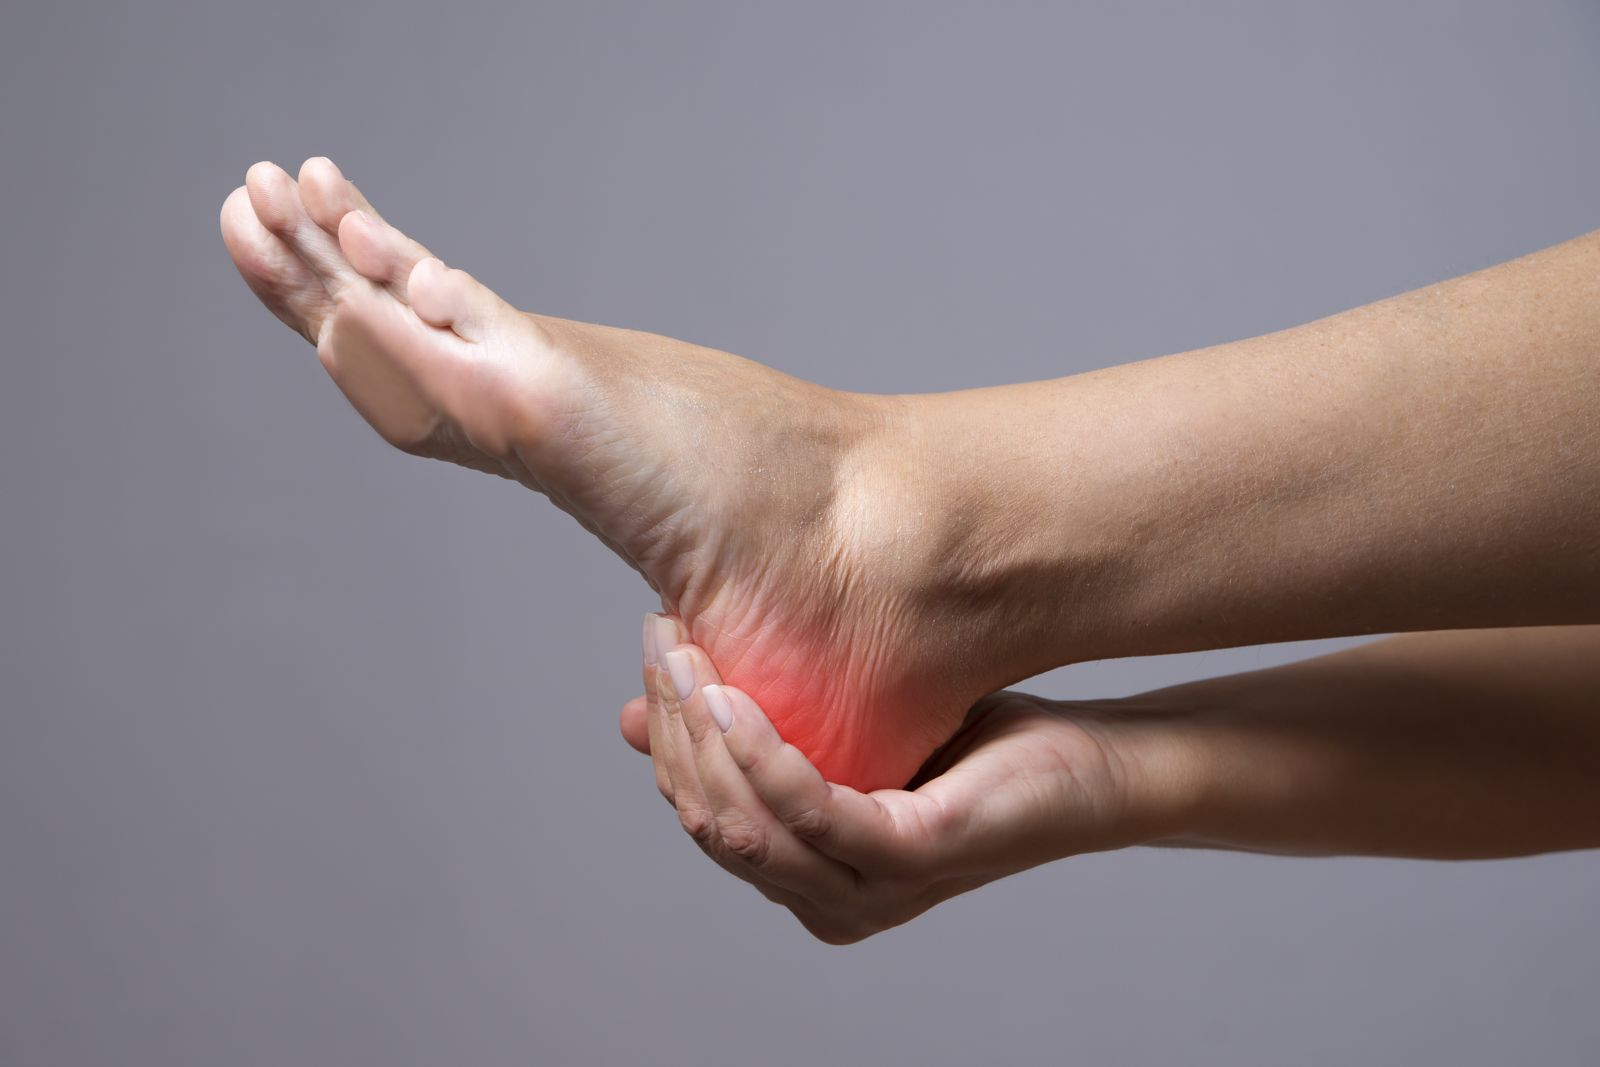 A foot with red heel and a person's hand holding the heel.